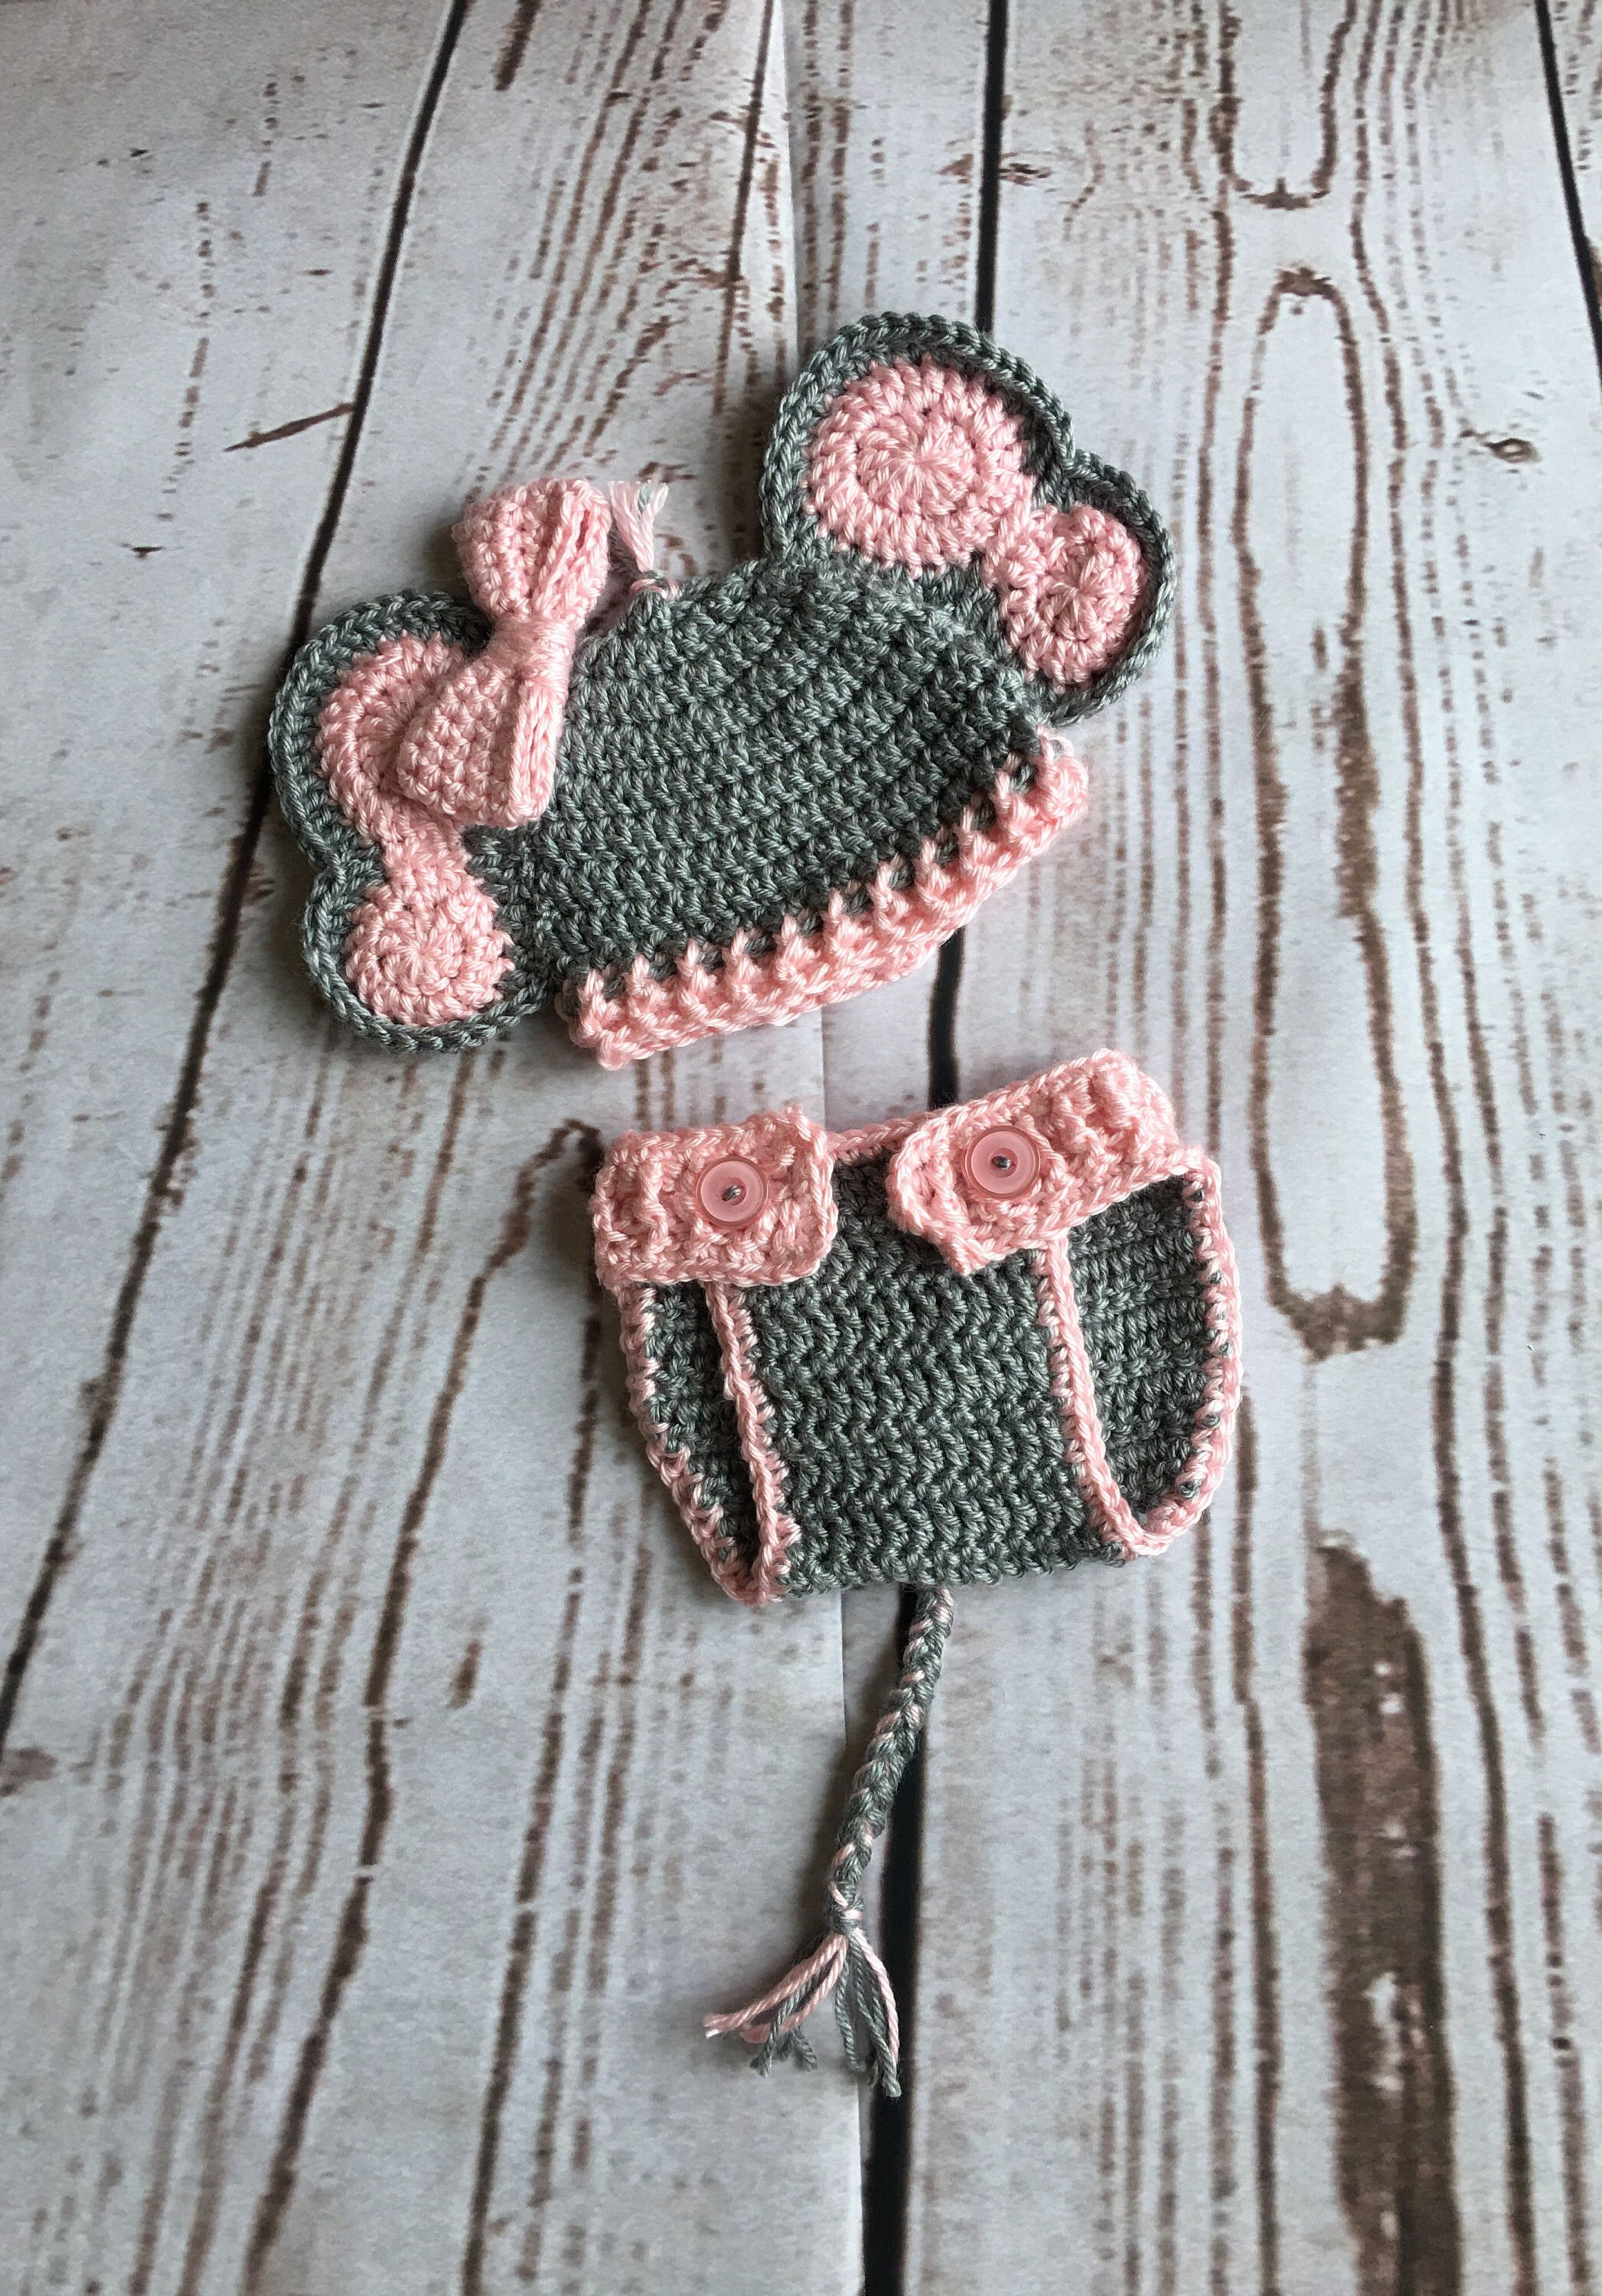 Newborn Elephant Outfit - Newborn Photo Prop - Baby Photo Prop - Newborn Photo Outfit - & Newborn Elephant Outfit - Newborn Photo Prop - Baby Photo Prop ...